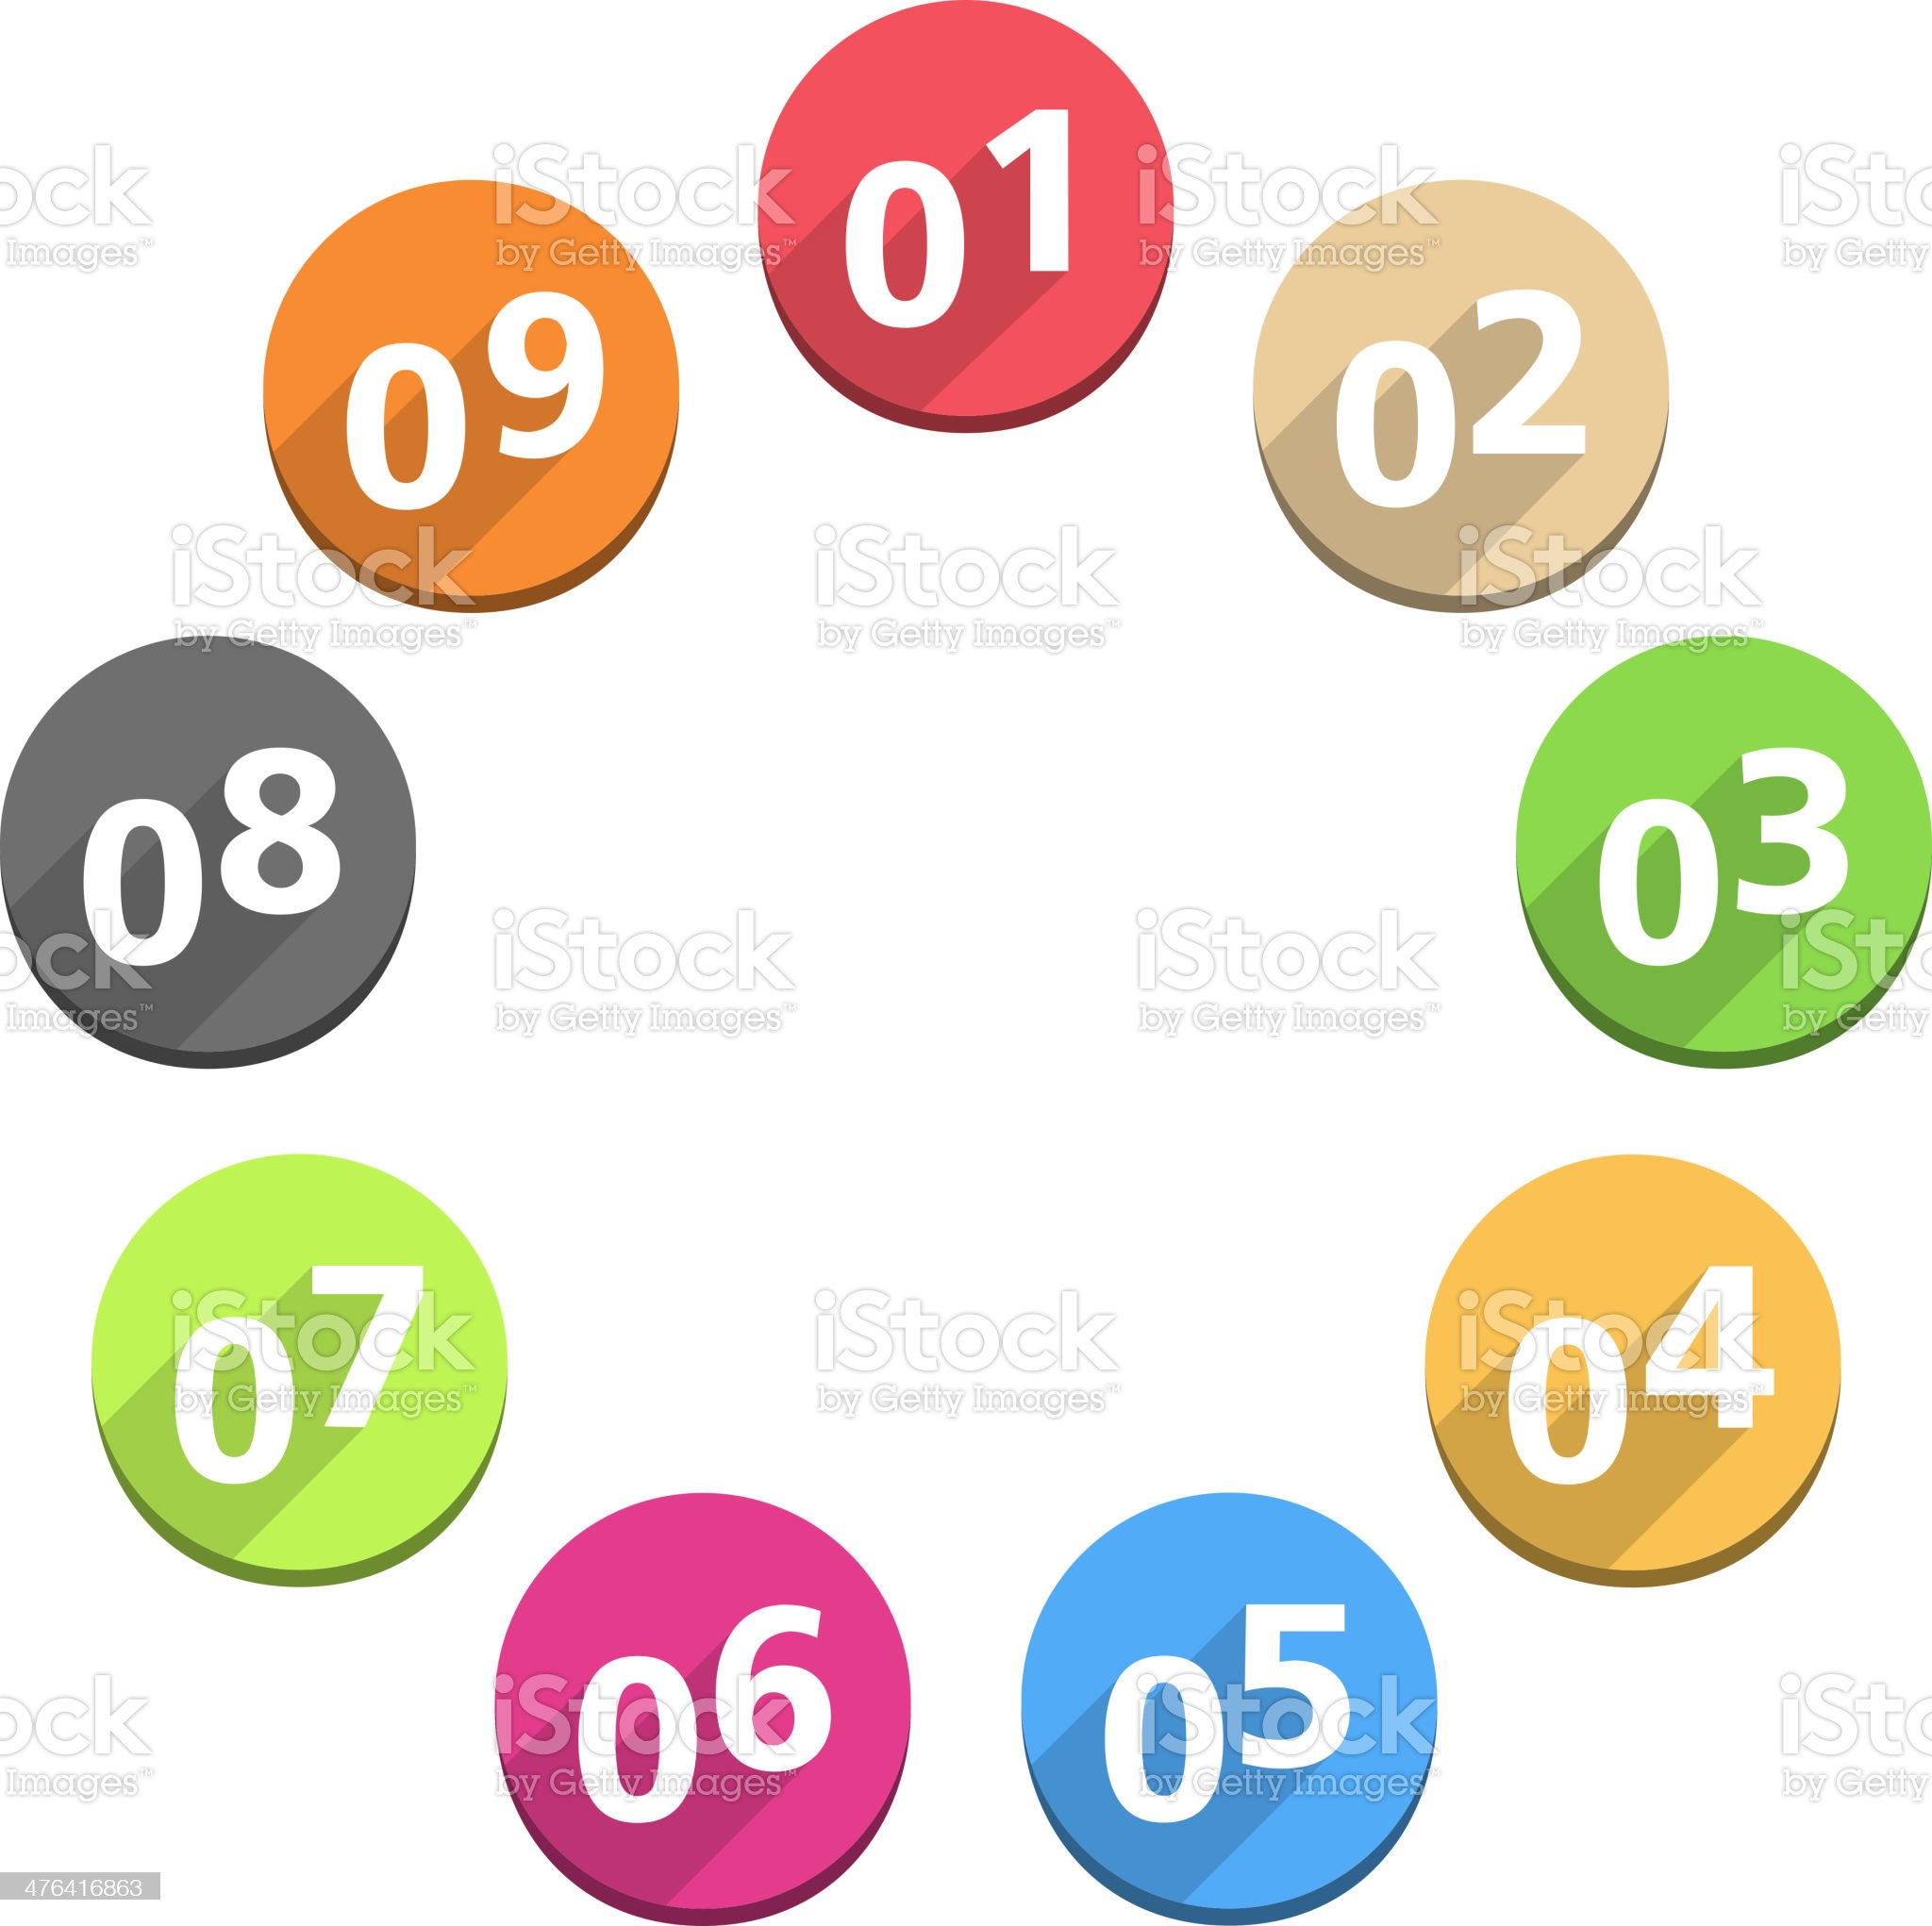 Numbers royalty-free stock vector art